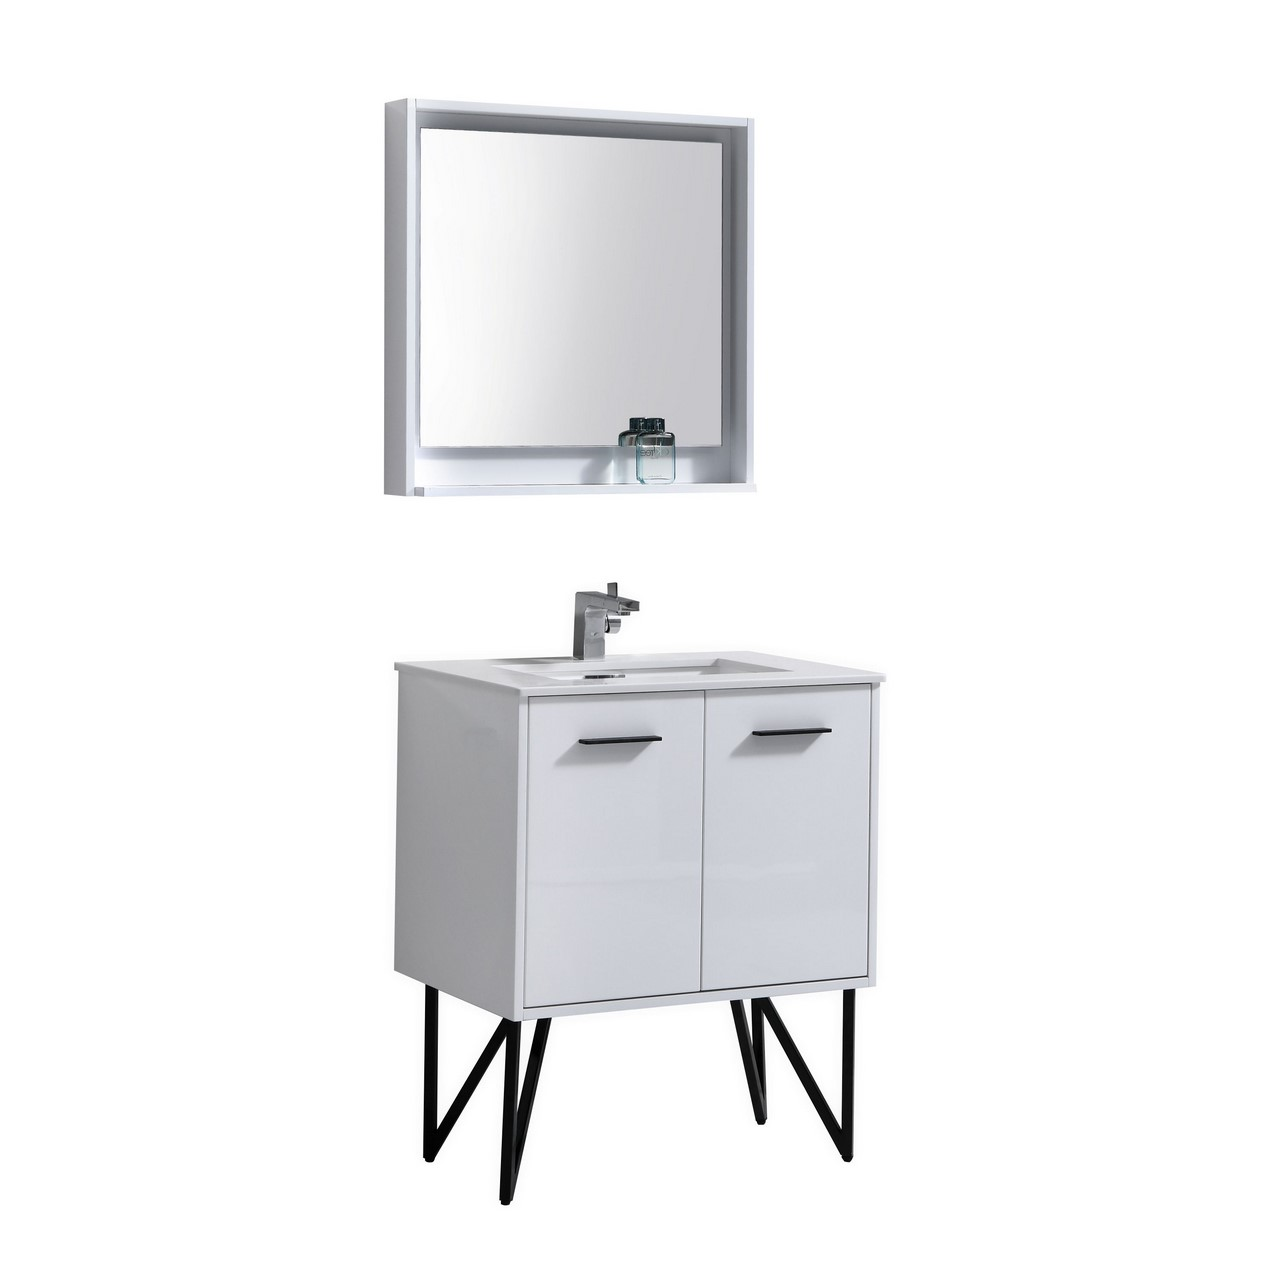 Matching Vanity Light And Mirror : Bosco 30